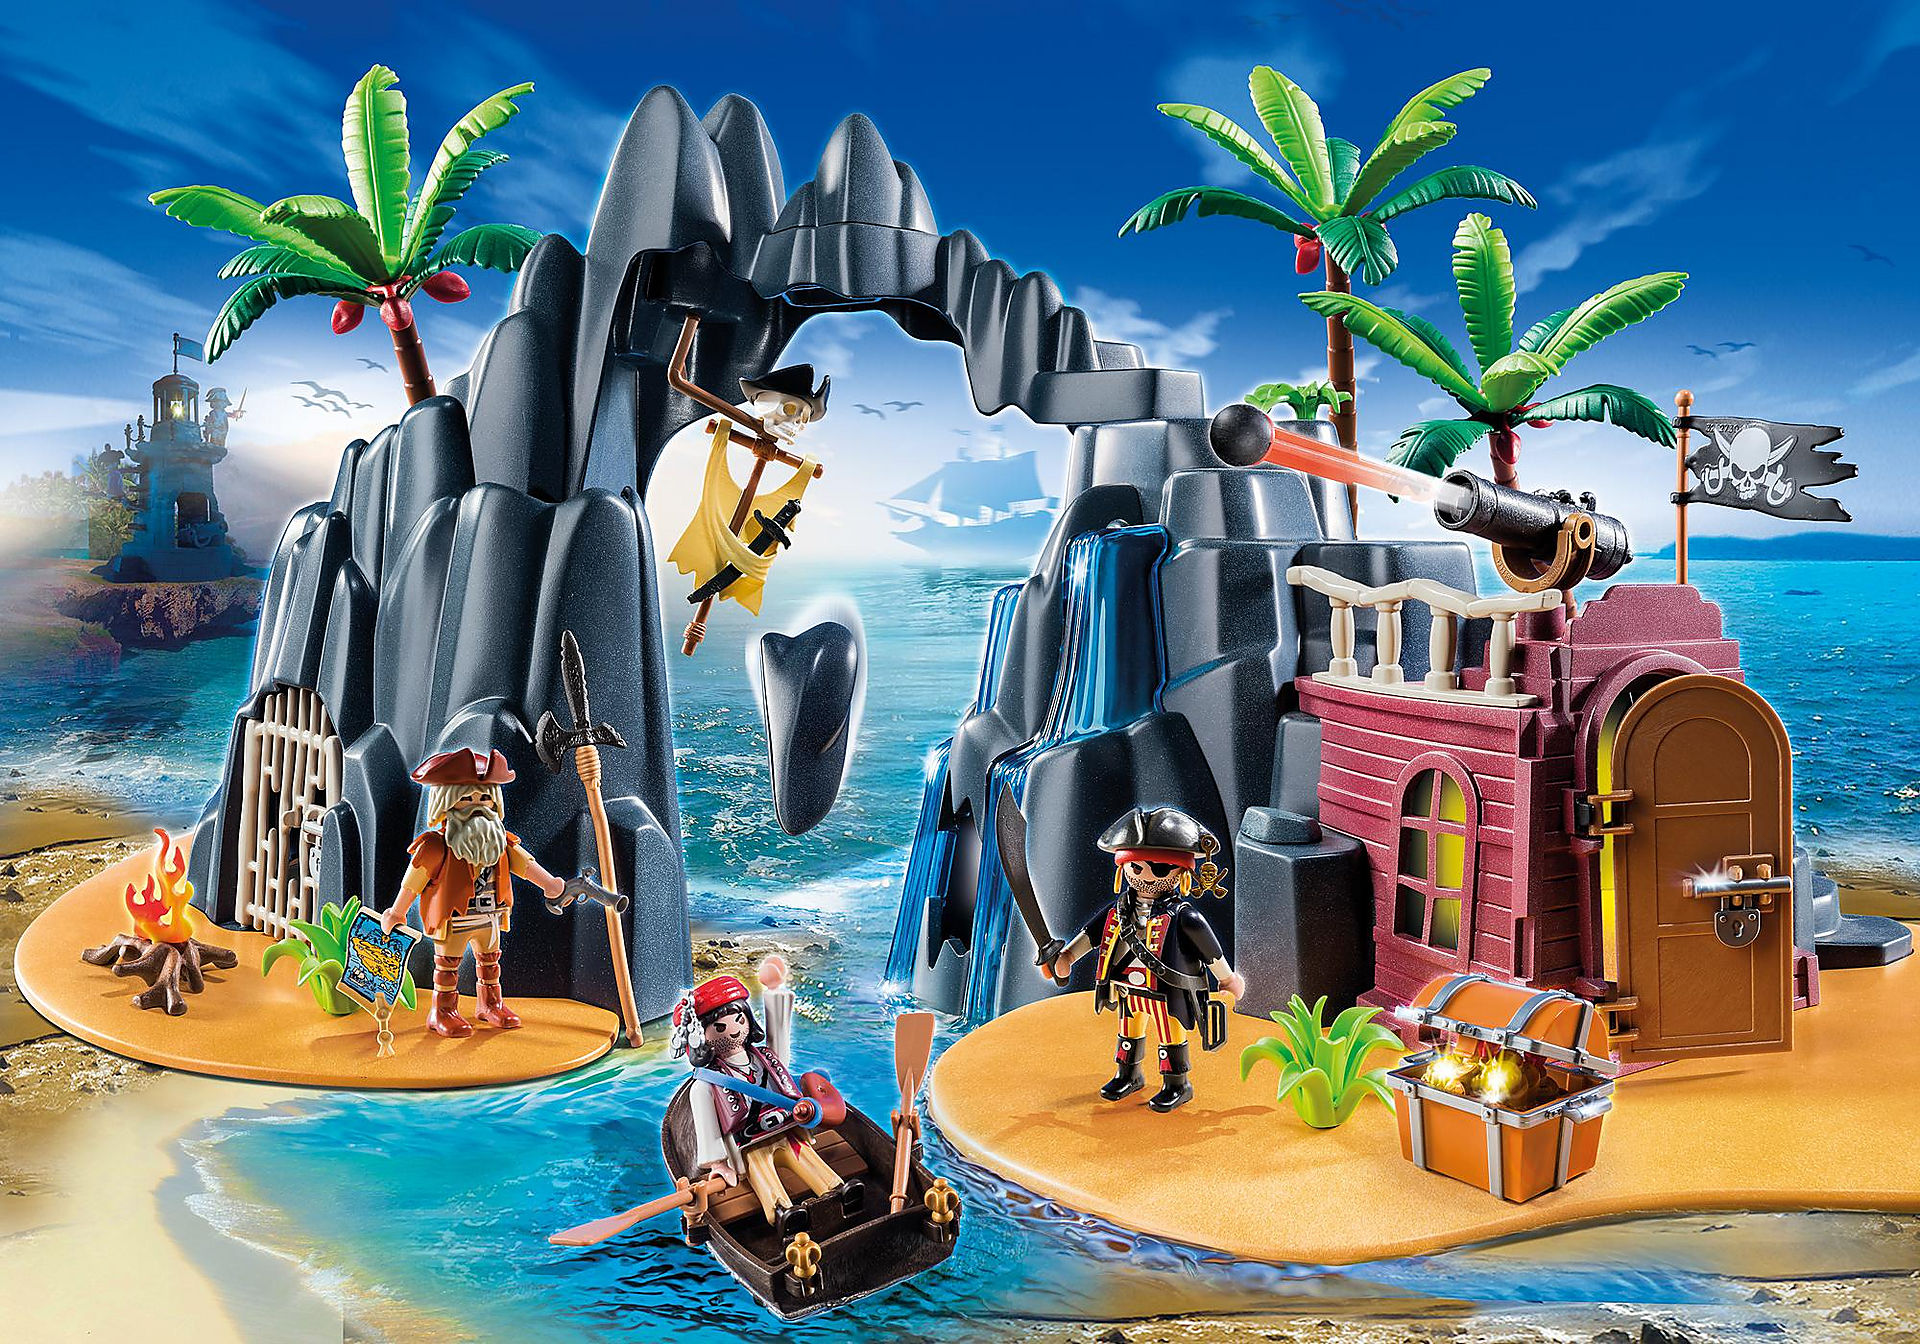 http://media.playmobil.com/i/playmobil/6679_product_detail/Isola del tesoro fortificata